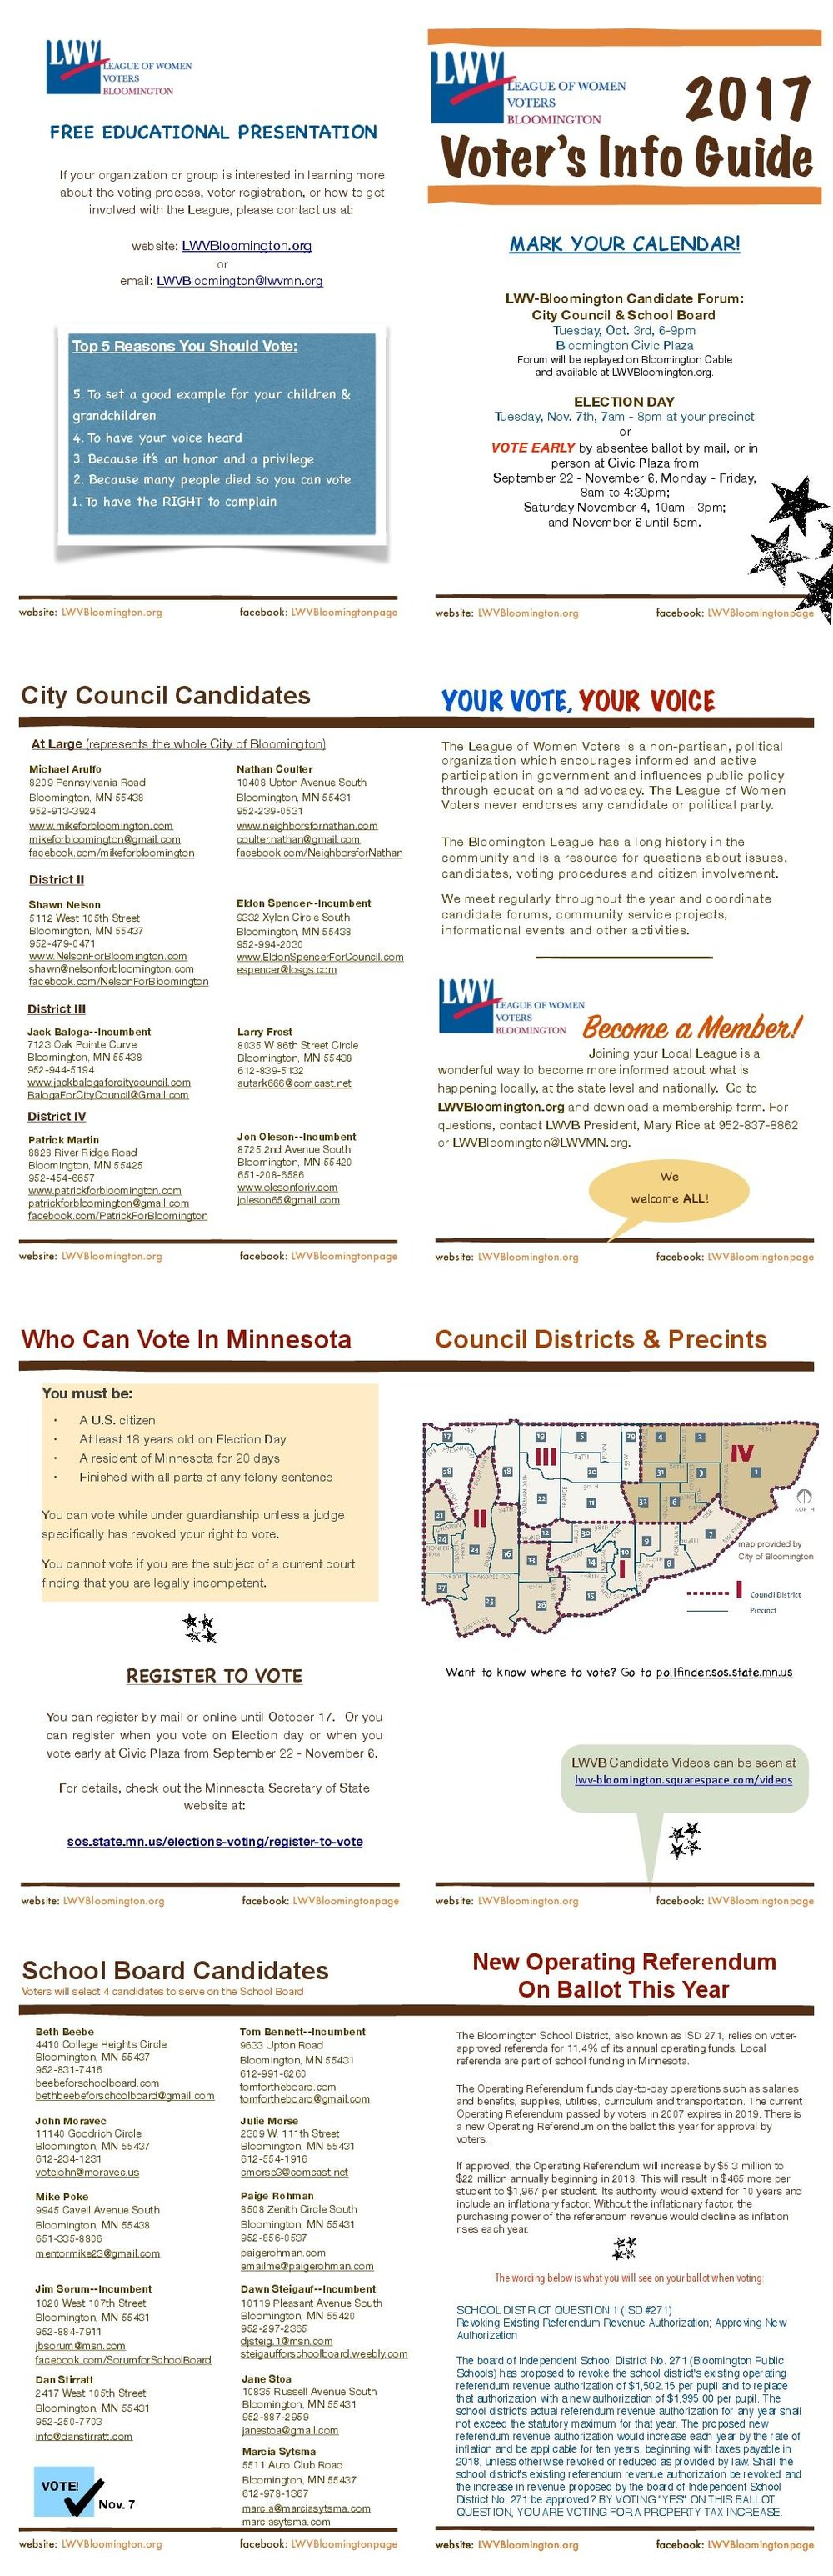 Voter's Guide (print)--2017 copy final version for reprint 9.17.jpg